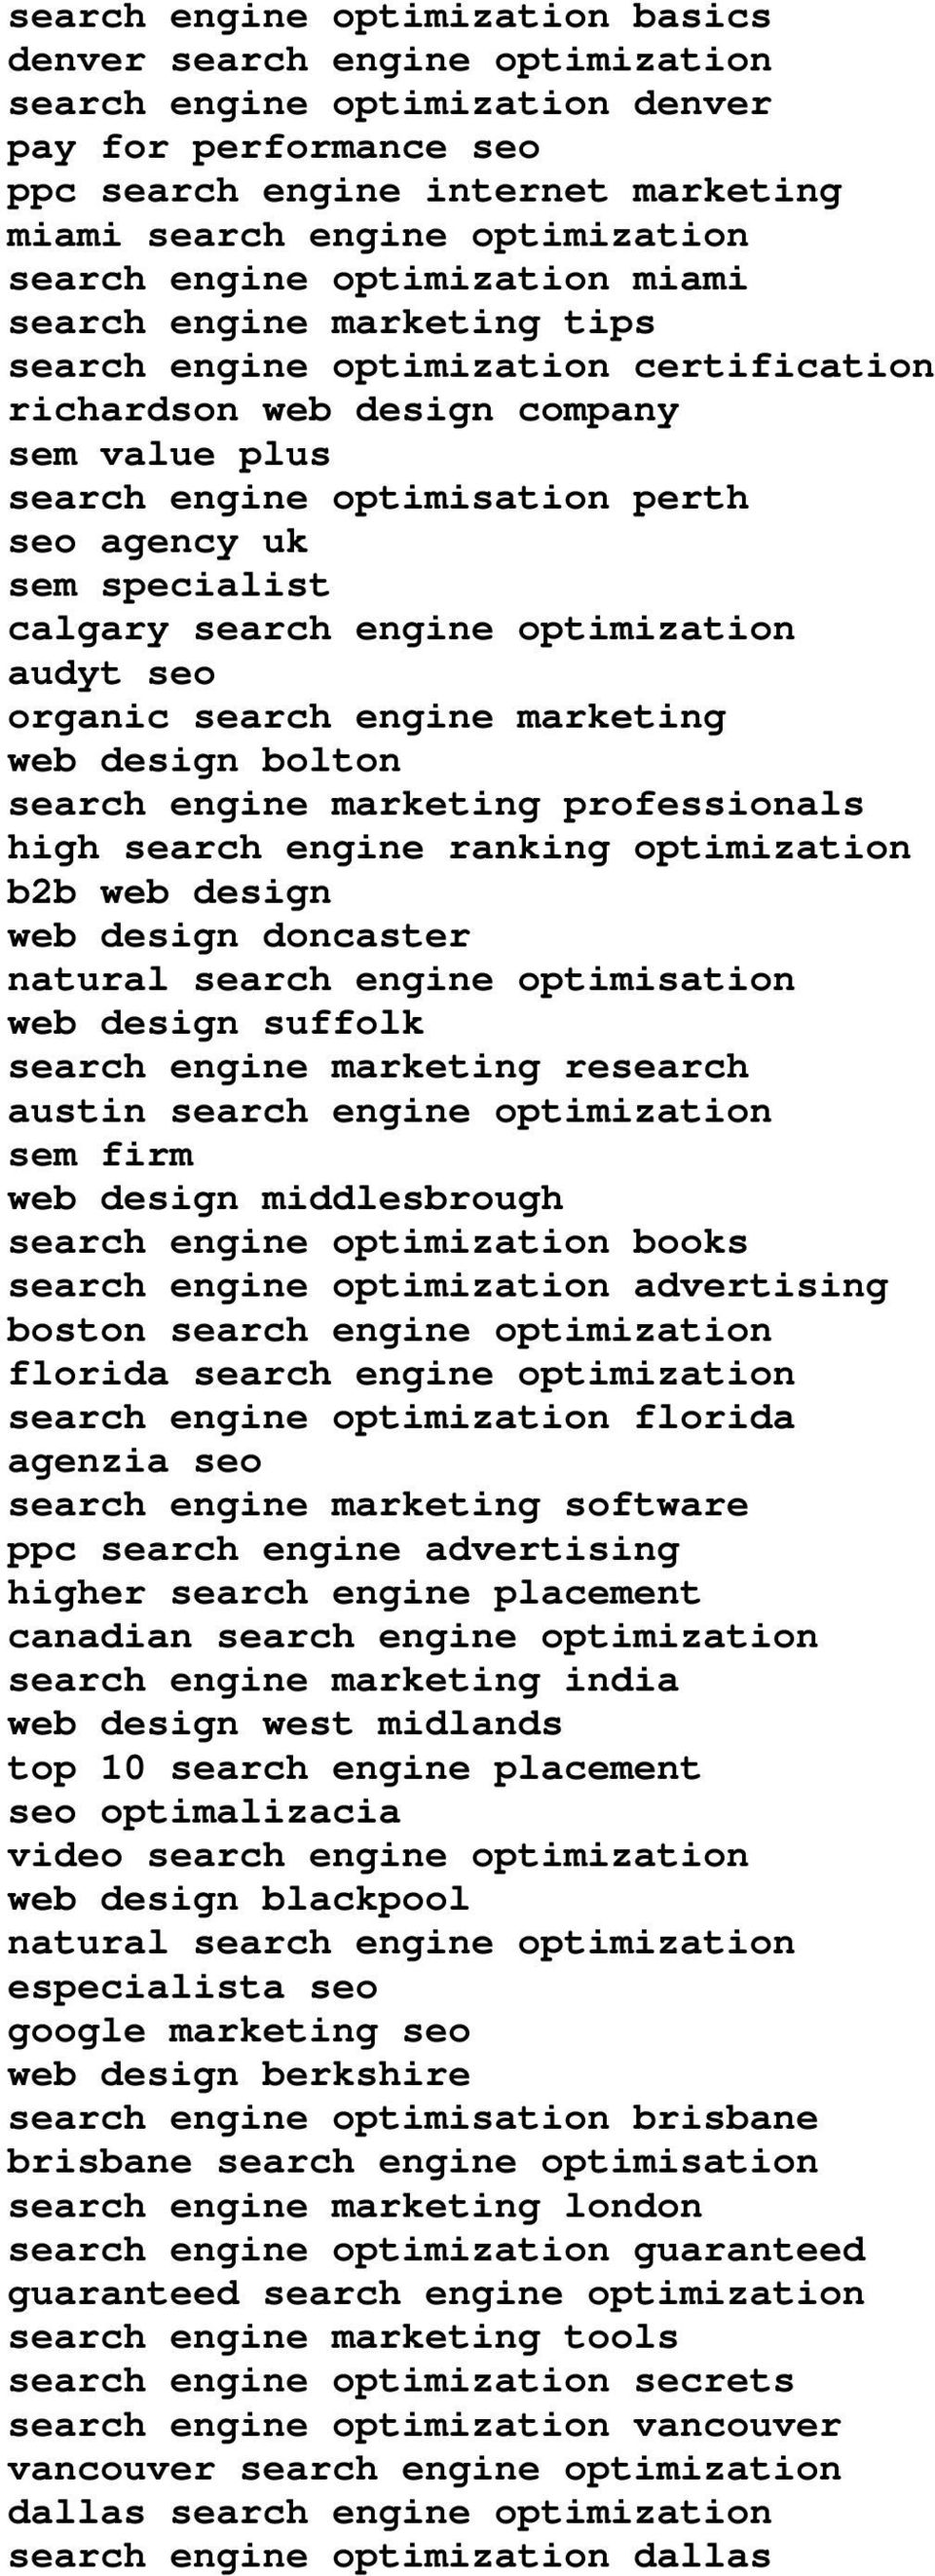 specialist calgary search engine optimization audyt seo organic search engine marketing web design bolton search engine marketing professionals high search engine ranking optimization b2b web design